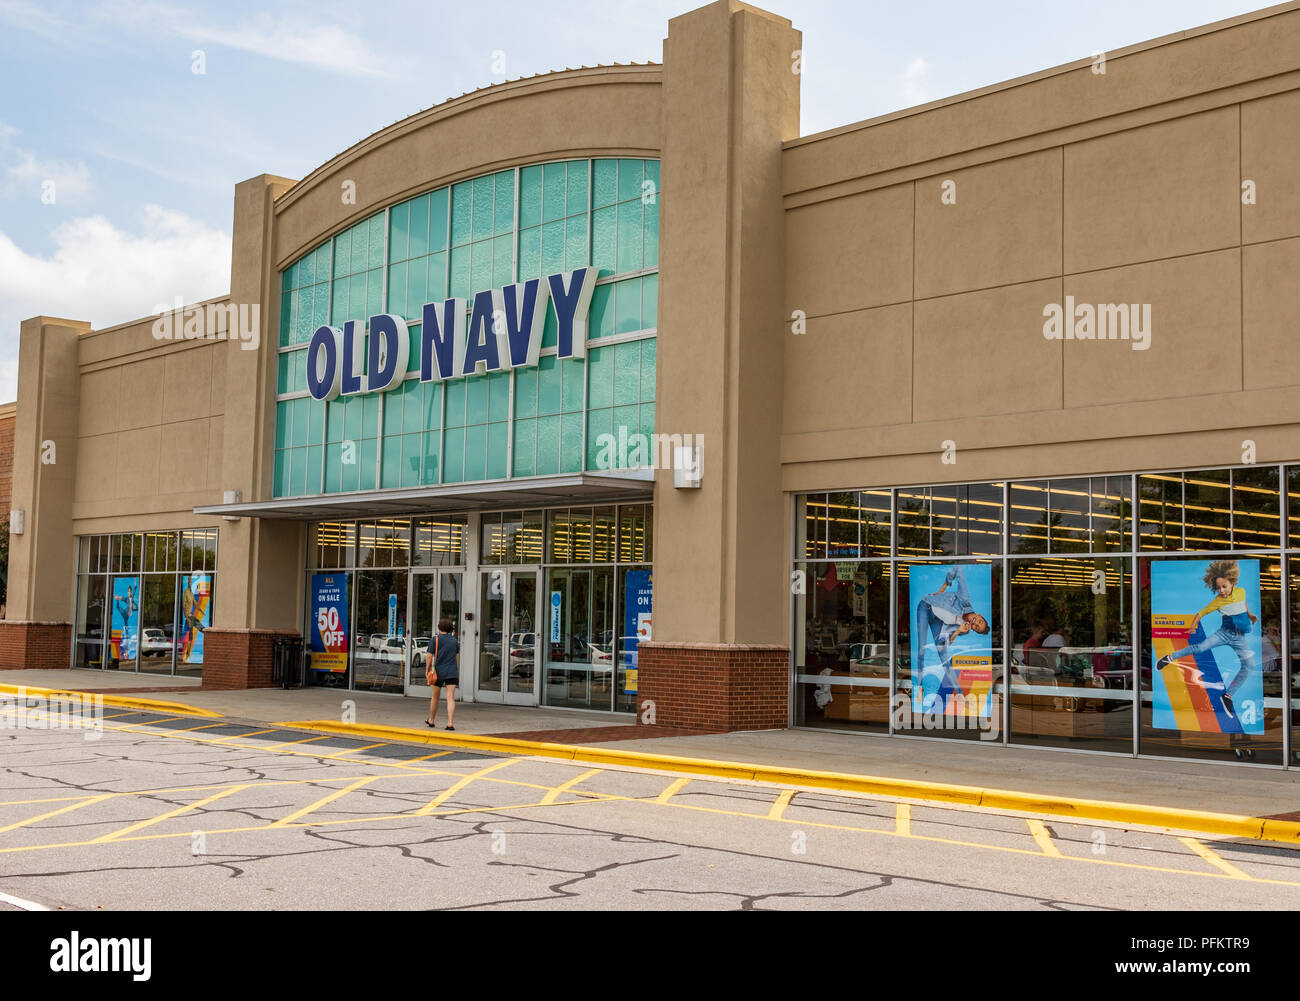 Old Navy Store Stock Photos & Old Navy Store Stock Images - Alamy